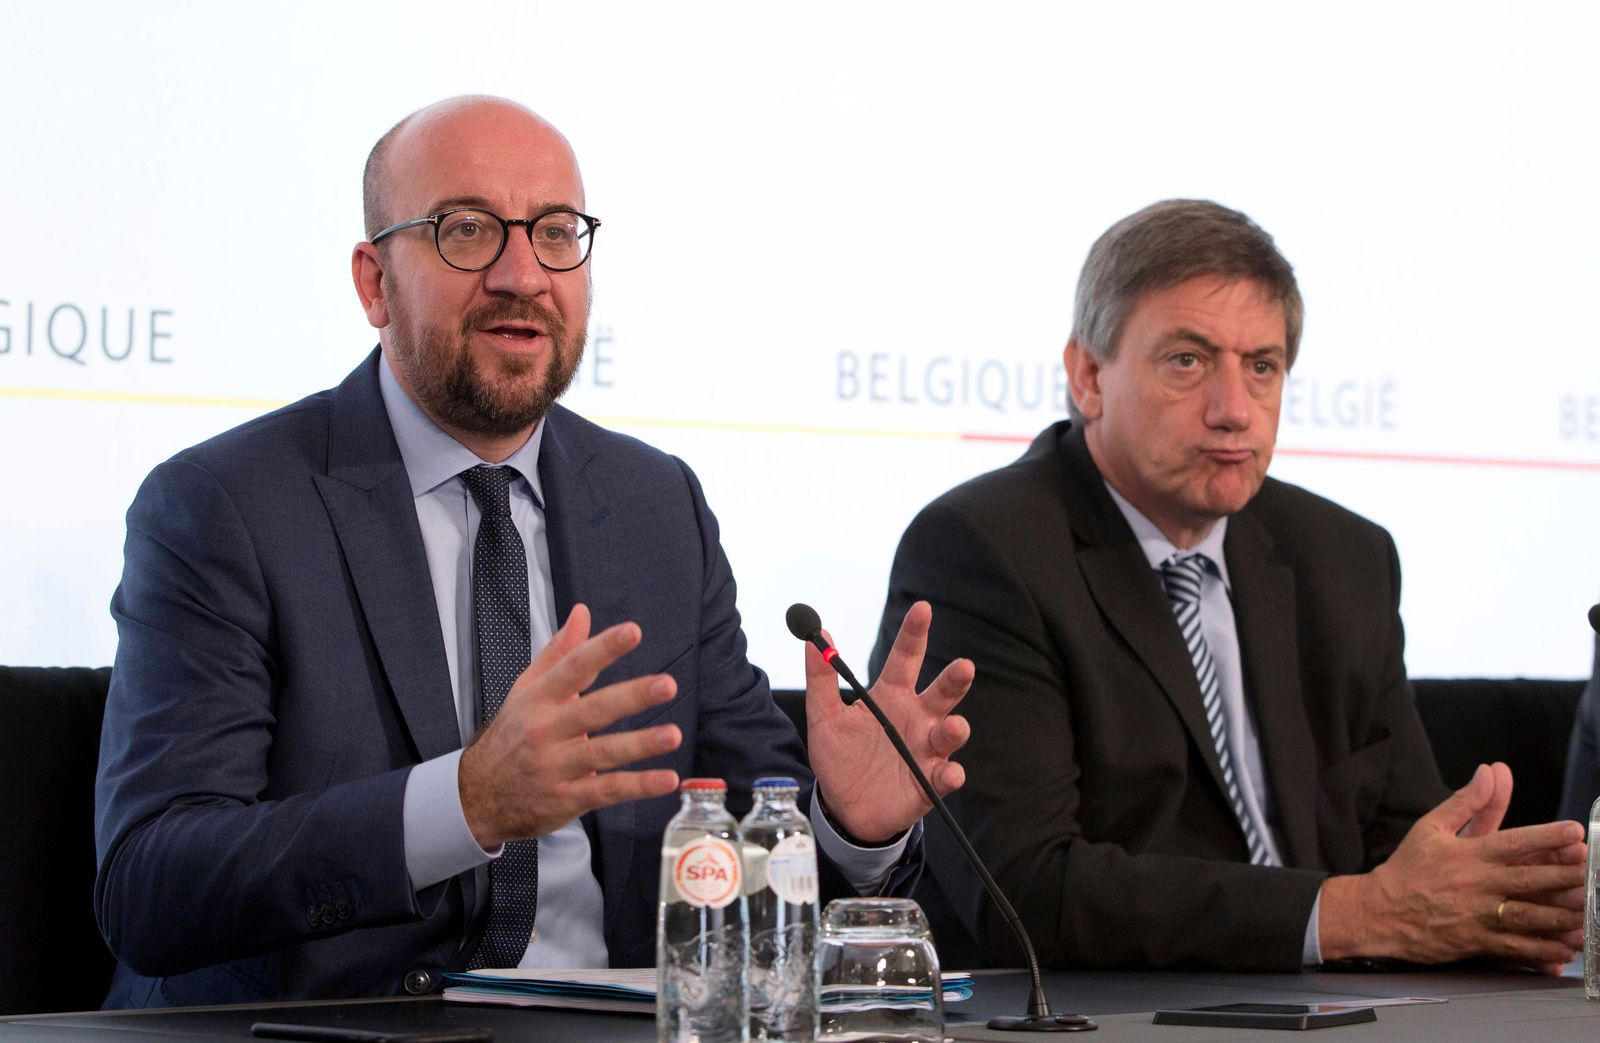 In this June 21, 2017 file photo, Belgian Prime Minister Charles Michel, left, and Belgium's Interior Minister and the N-VA's top official in the government Jan Jambon address the media during a press conference at the prime ministers office in Brussels. (AP Photo/Virginia Mayo)